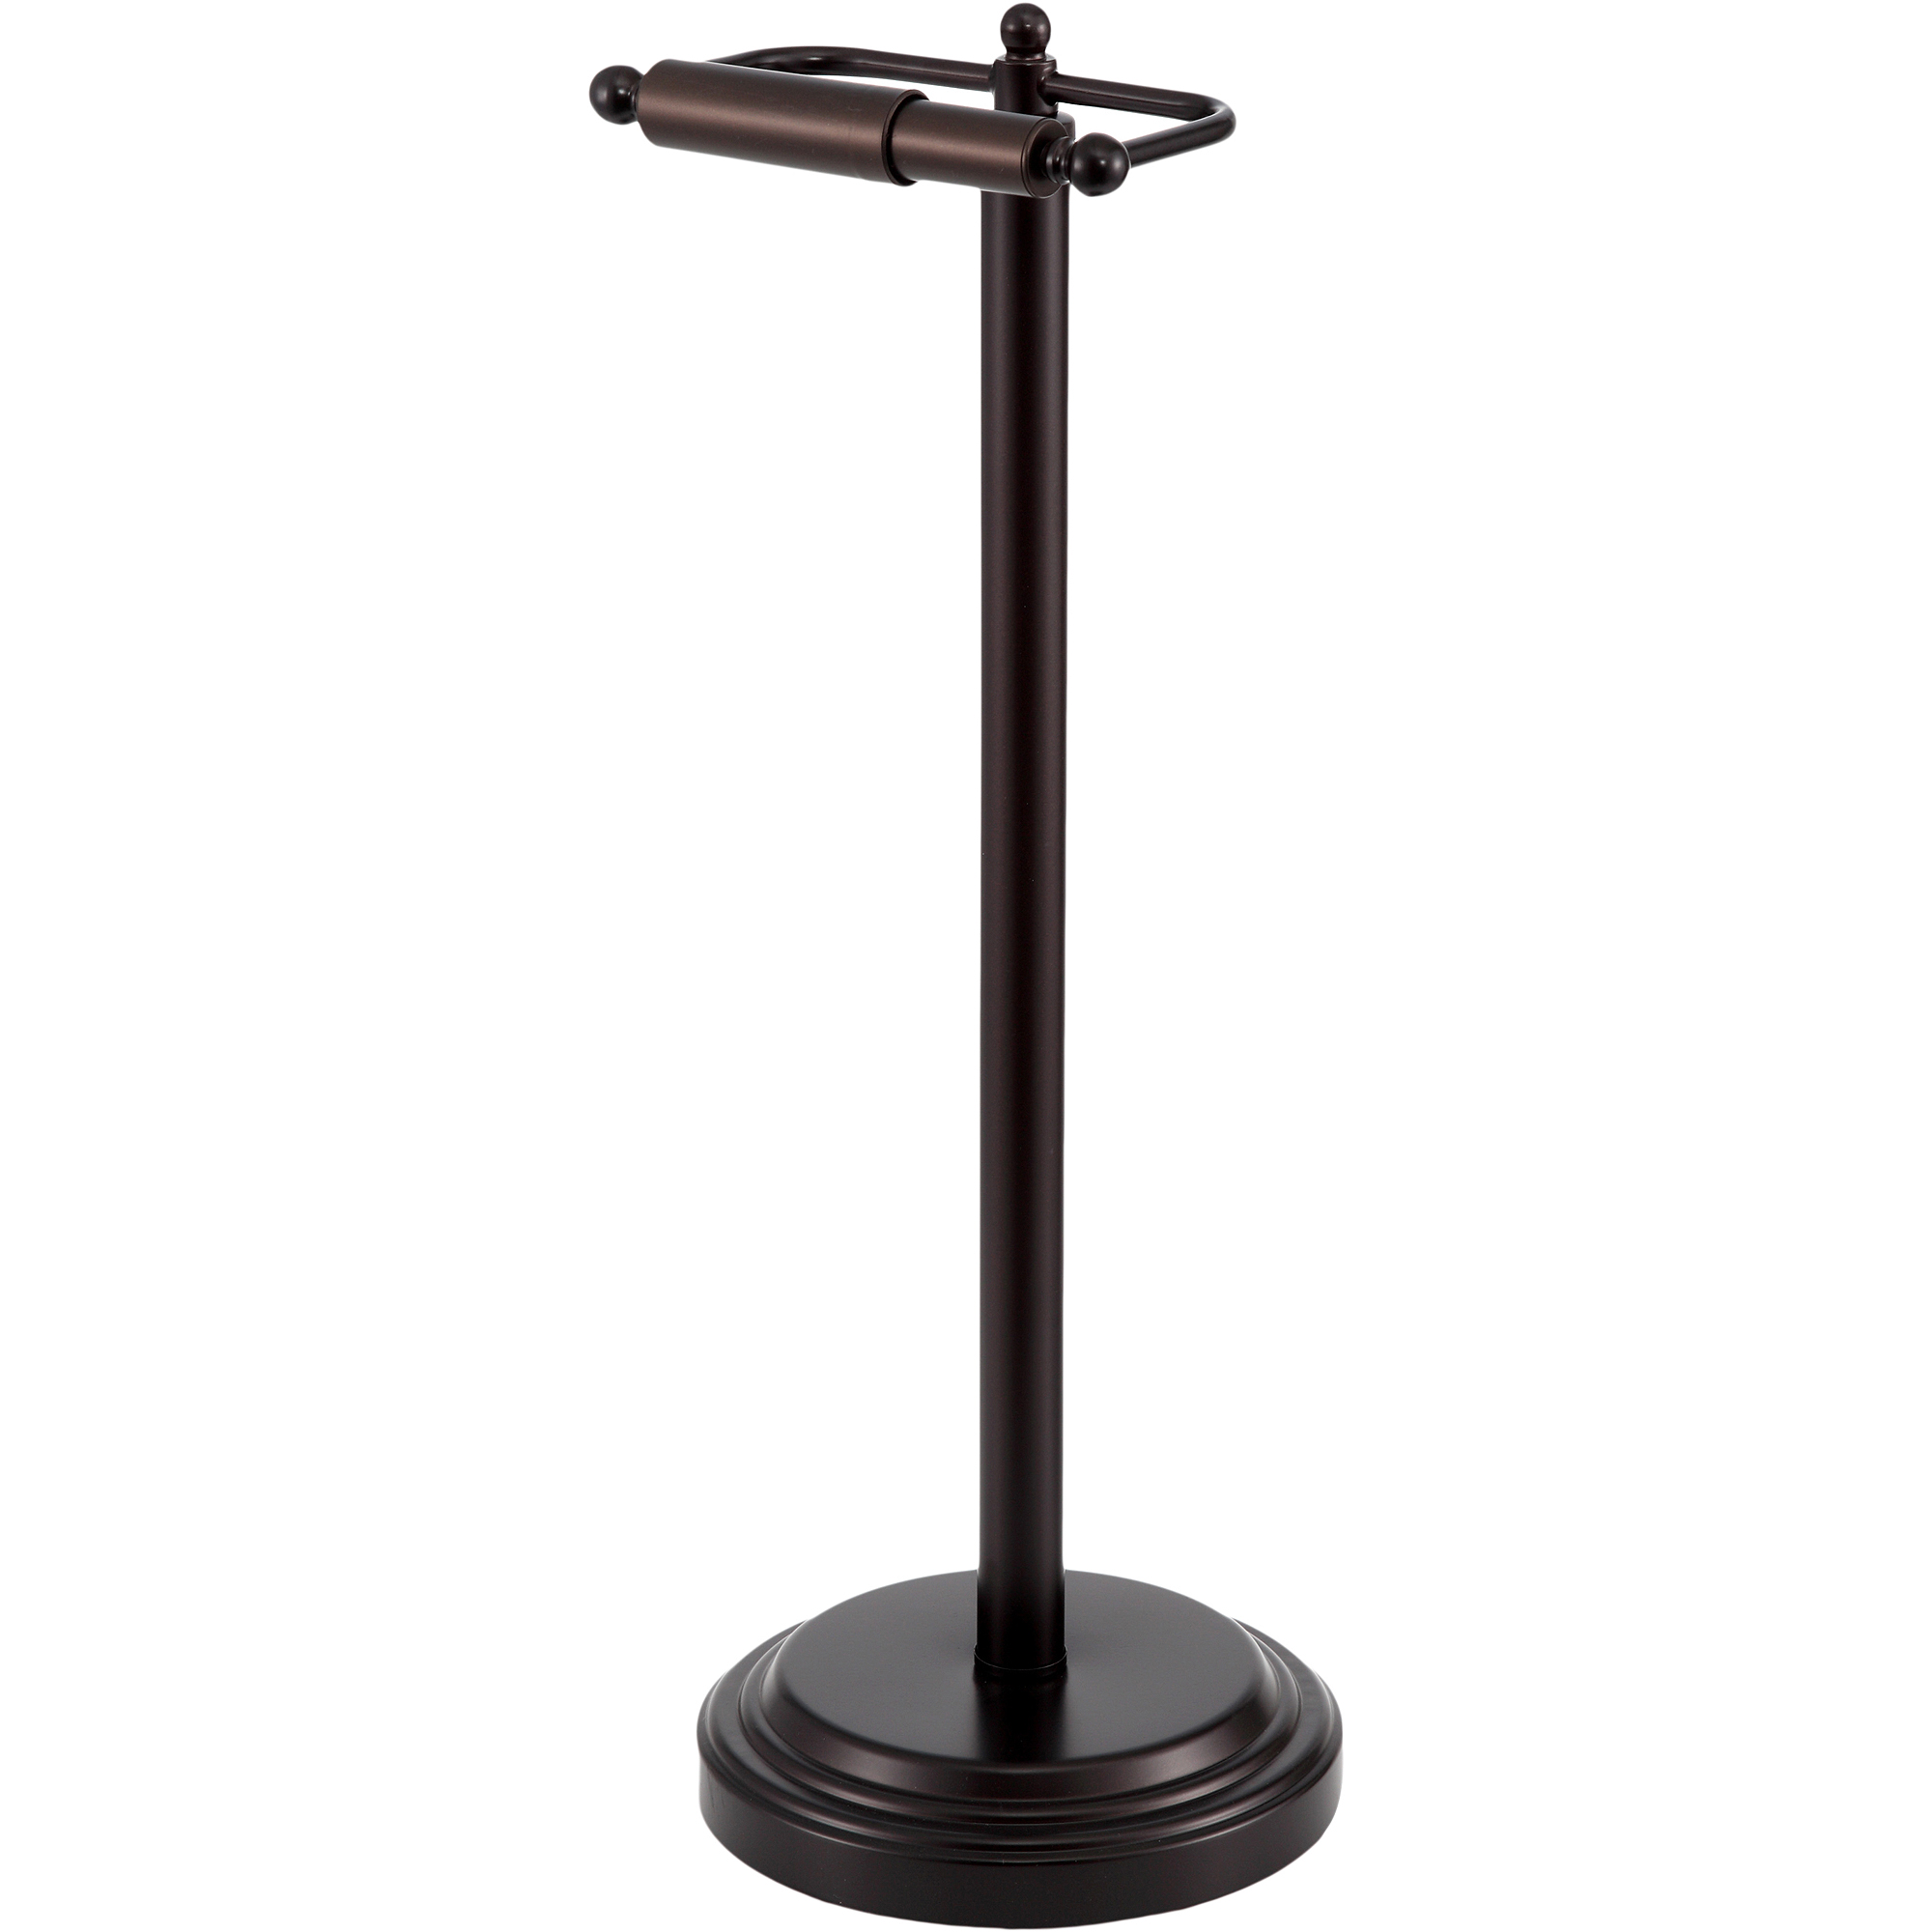 Modern bathroom toilet paper holder - Chapter Standing Toilet Paper Holder Oil Rubbed Bronze Finish